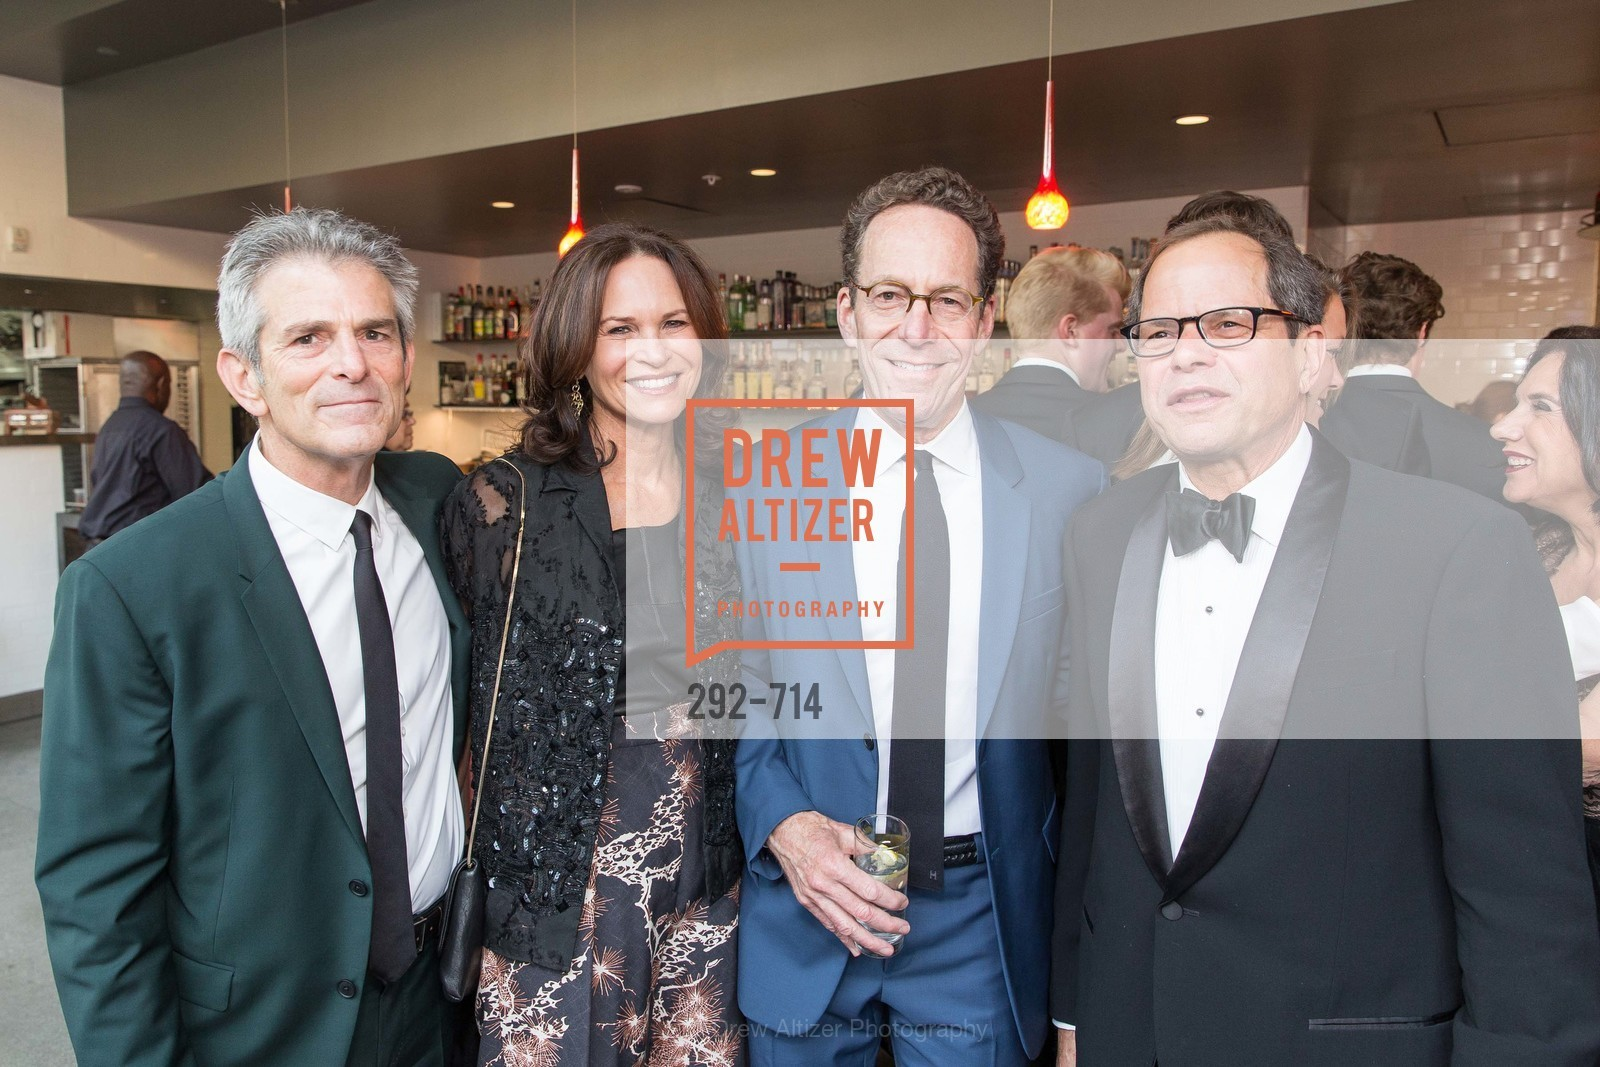 Jeffrey Fraenkel, Randi Fisher, Alan Mark, Randall Kline, SFJAZZ Gala 2015 Honors Joni Mitchell with Lifetime Achievement Award, US, May 8th, 2015,Drew Altizer, Drew Altizer Photography, full-service agency, private events, San Francisco photographer, photographer california